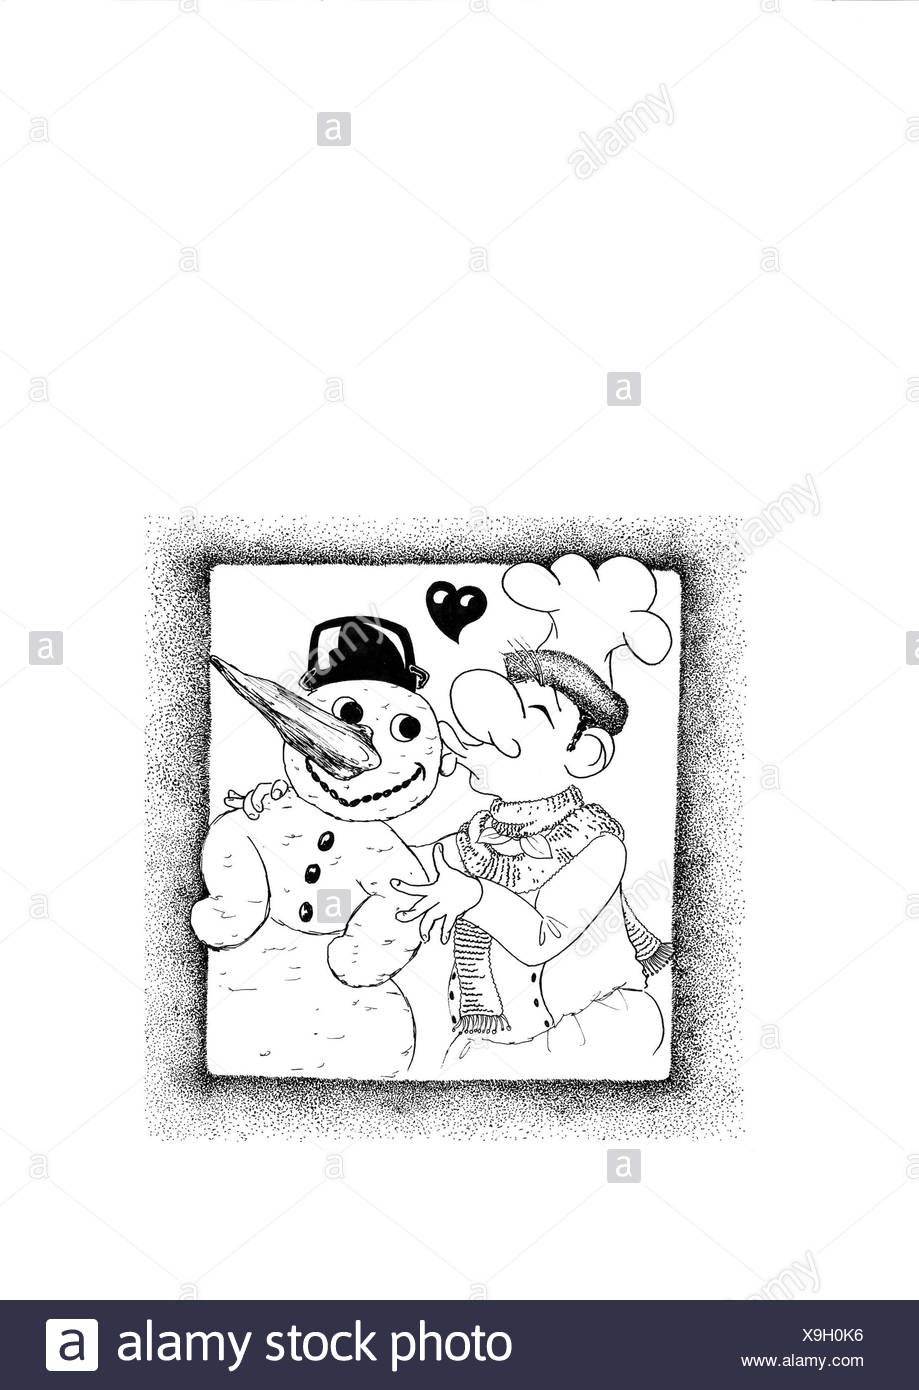 Cook and snowman in intimate togetherness - Stock Image